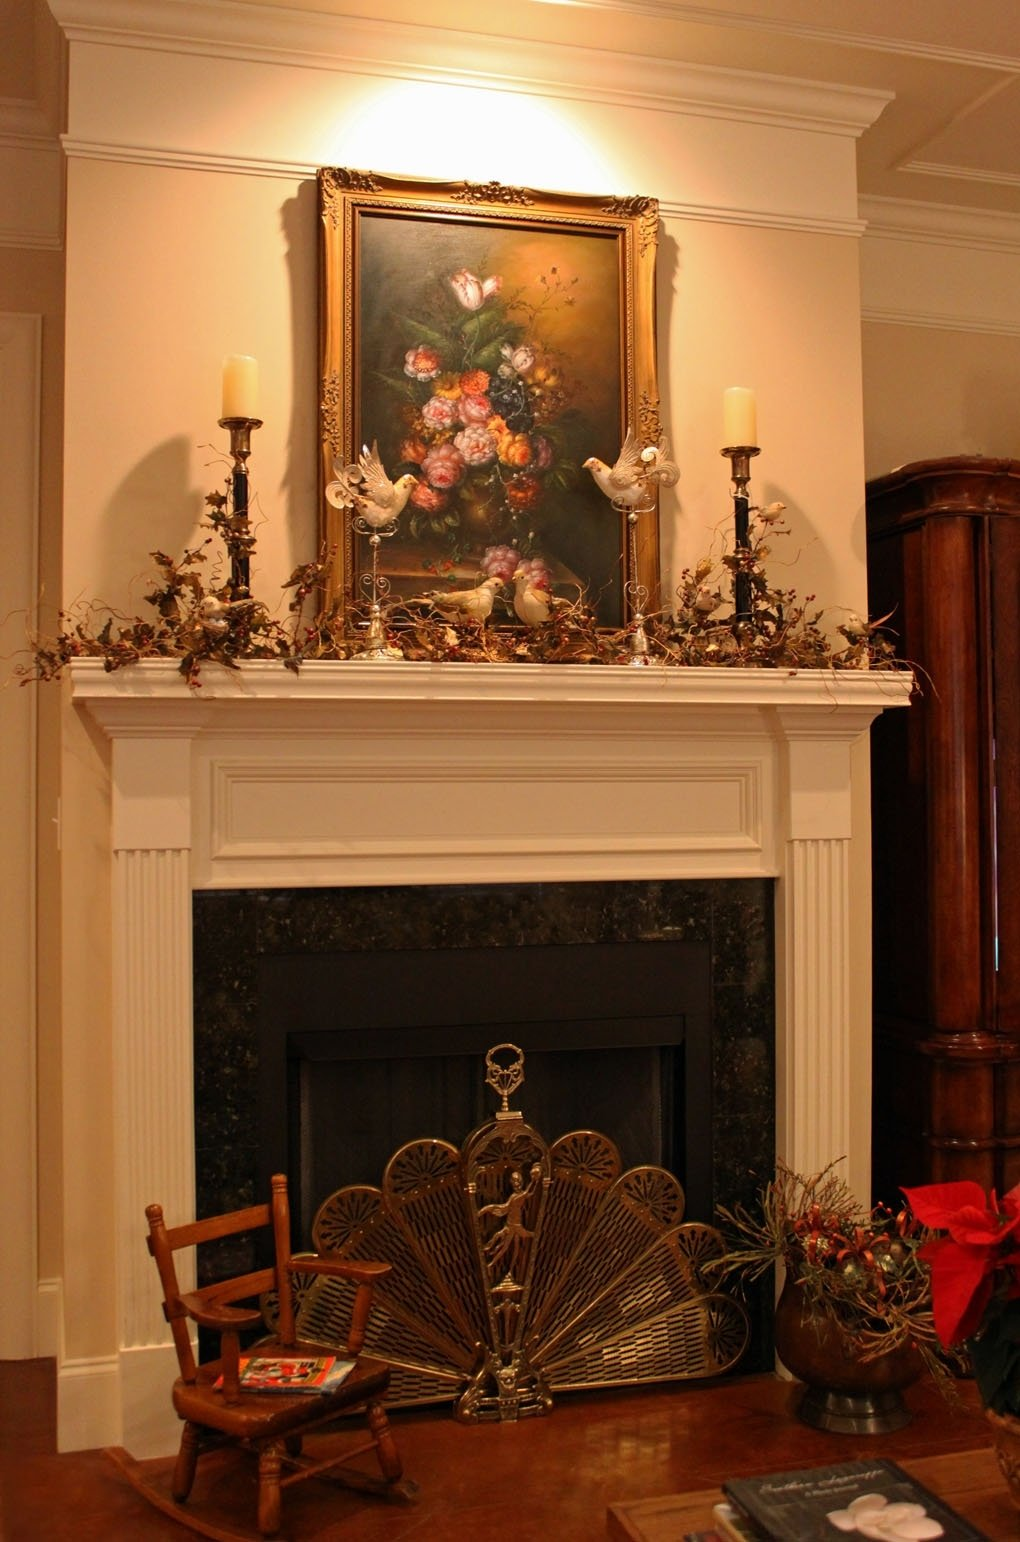 10 Spectacular Decorating Ideas For Fireplace Mantel decorating a fireplace mantel 2020